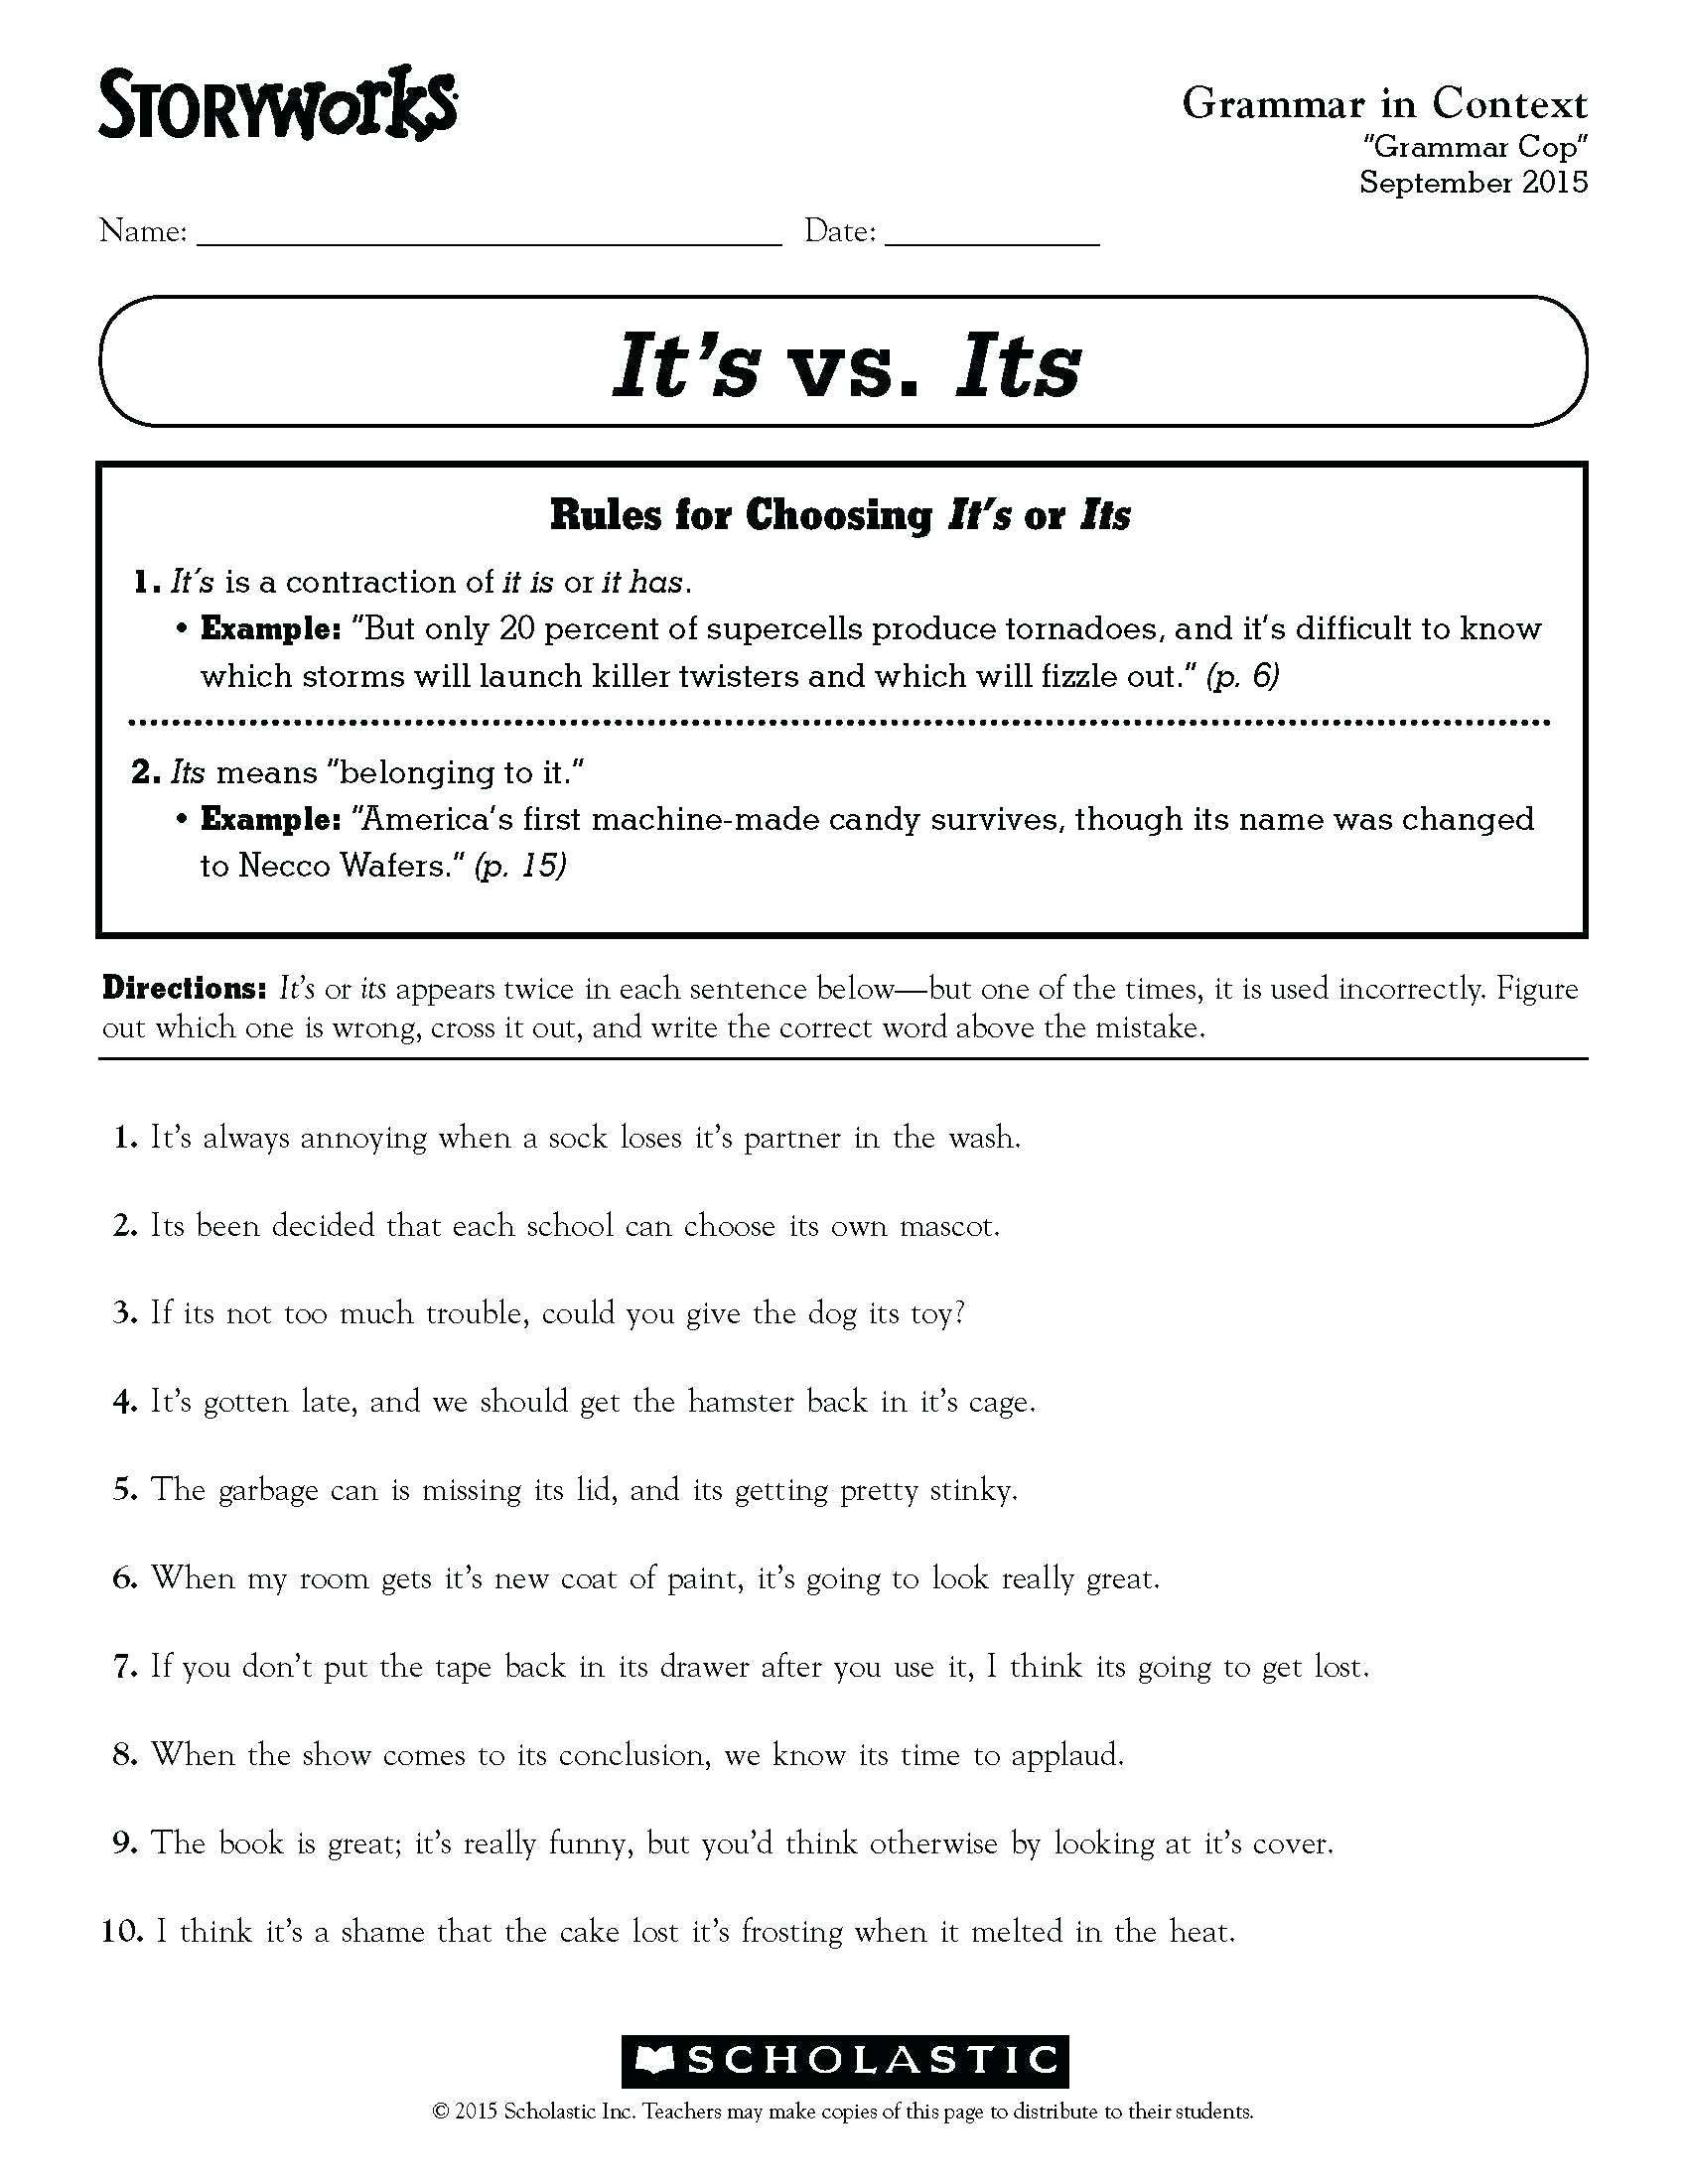 4 Sample Grade 1 Reading Comprehension Ideas Of Fourth Grade Grammar Worksheets For Exce In 2020 Third Grade Grammar Worksheets Fourth Grade Writing Grammar Worksheets